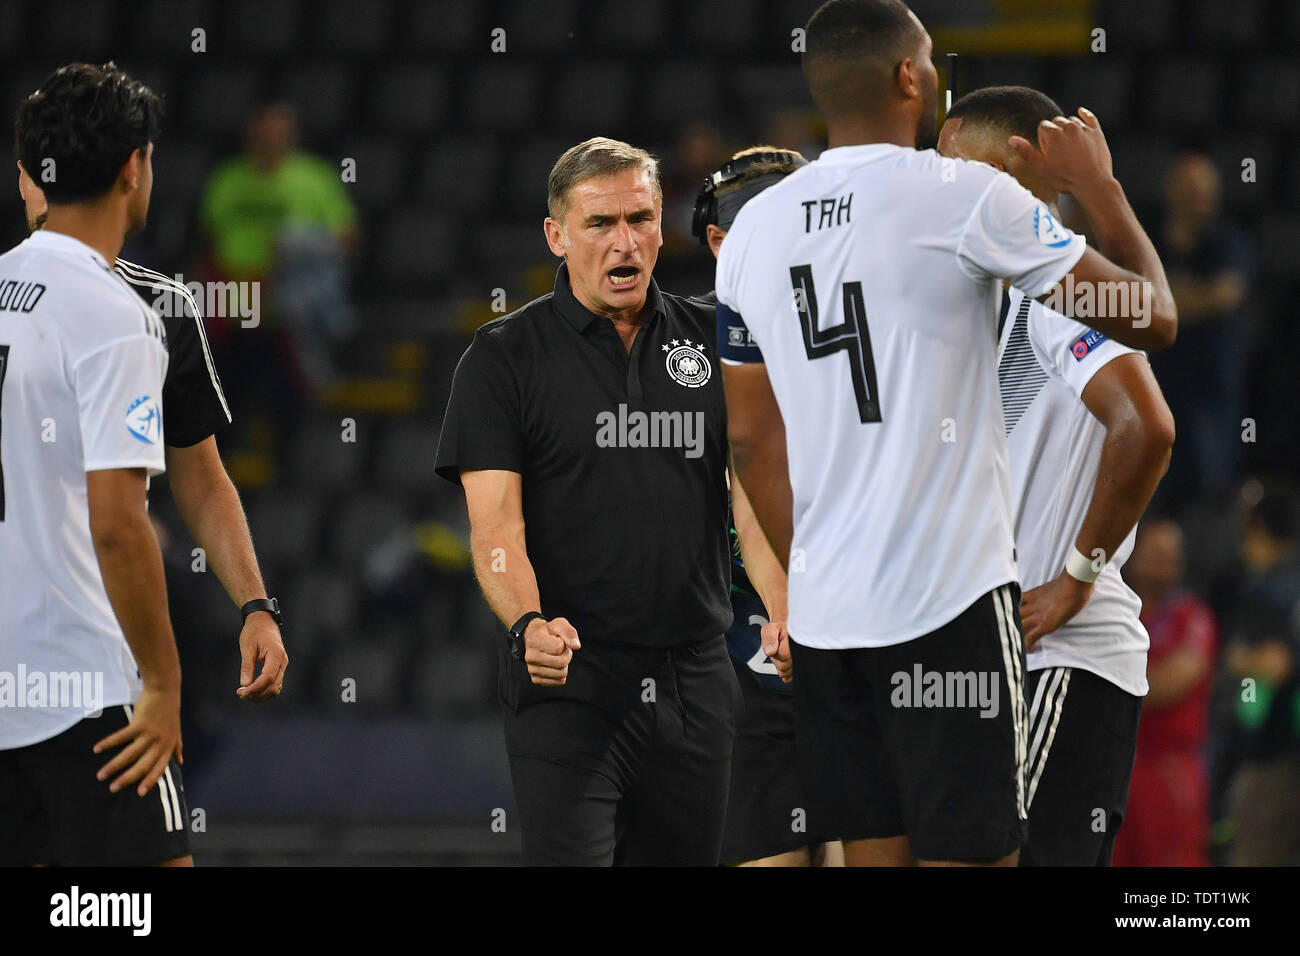 Udine, Italien. 17th June, 2019. Stefan KUNTZ, coach (GER) after the end of the game, clenching his fist, jubilation, joy, enthusiasm, Germany (GER) -Daenemark (DEN) 3-1, on 17.06.2019 Stadio Friuli Udine. Football U-21, UEFA Under21 European Championship in Italy/SanMarino from 16.-30.06.2019. | Usage worldwide Credit: dpa/Alamy Live News - Stock Image